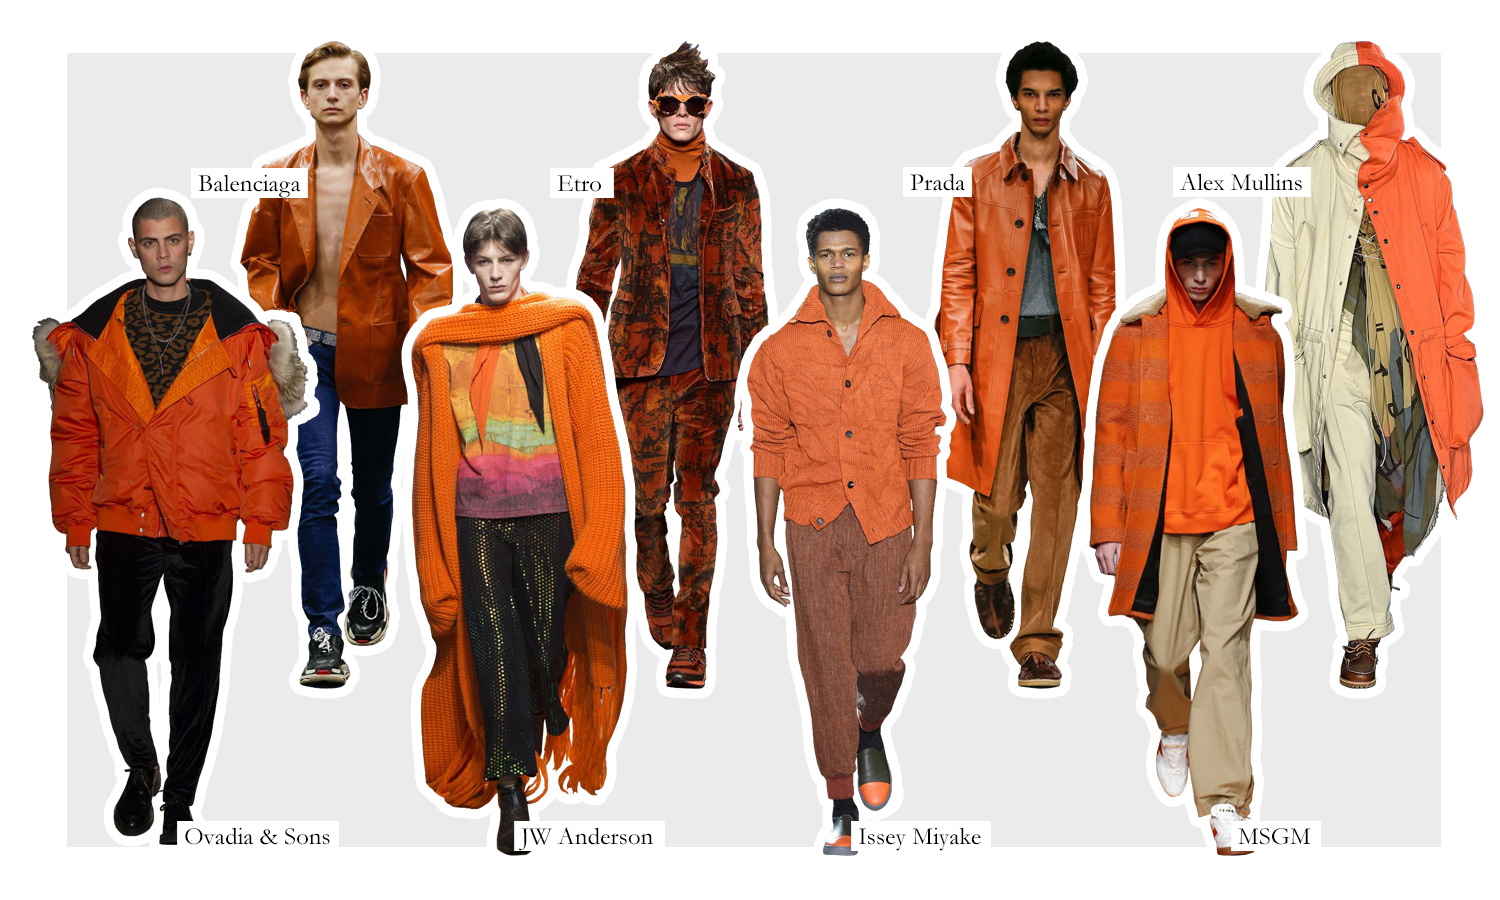 Menswear Trends - Art By Sarah Harvey | Fashion magazine | Fashion magazine in India | Online fashion magazine | Online fashion magazine in India | Indian fashion magazine